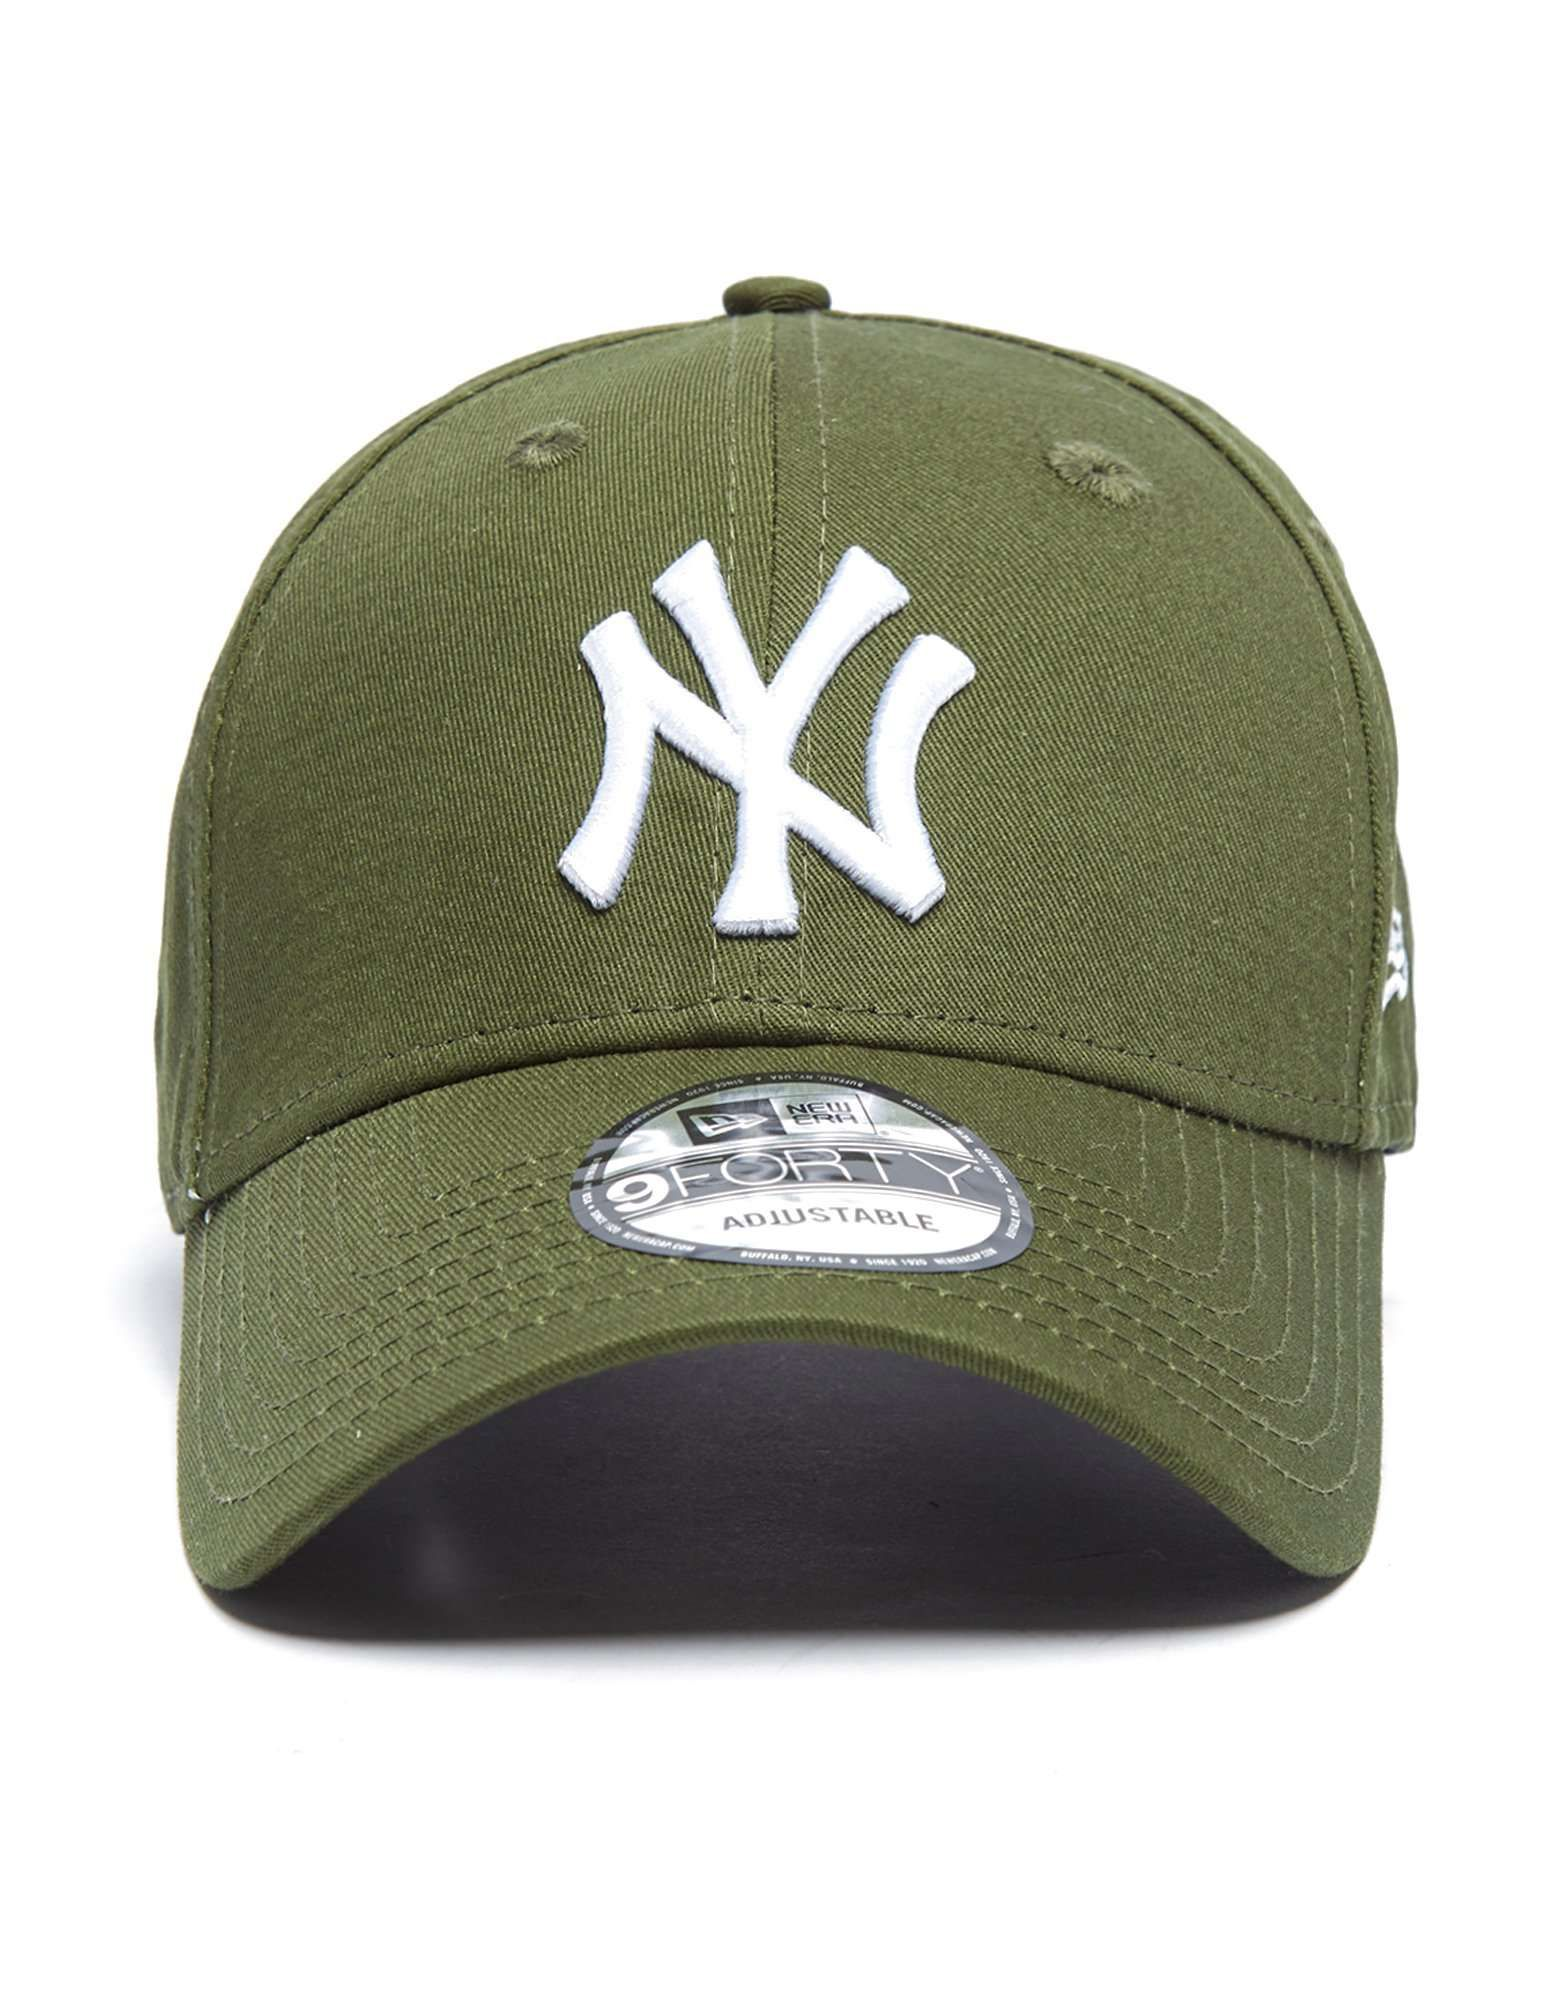 New Era MLB New York Yankees 9FORTY Essentials Cap - Shop online for New  Era MLB New York Yankees 9FORTY Essentials Cap with JD Sports 1030881900b